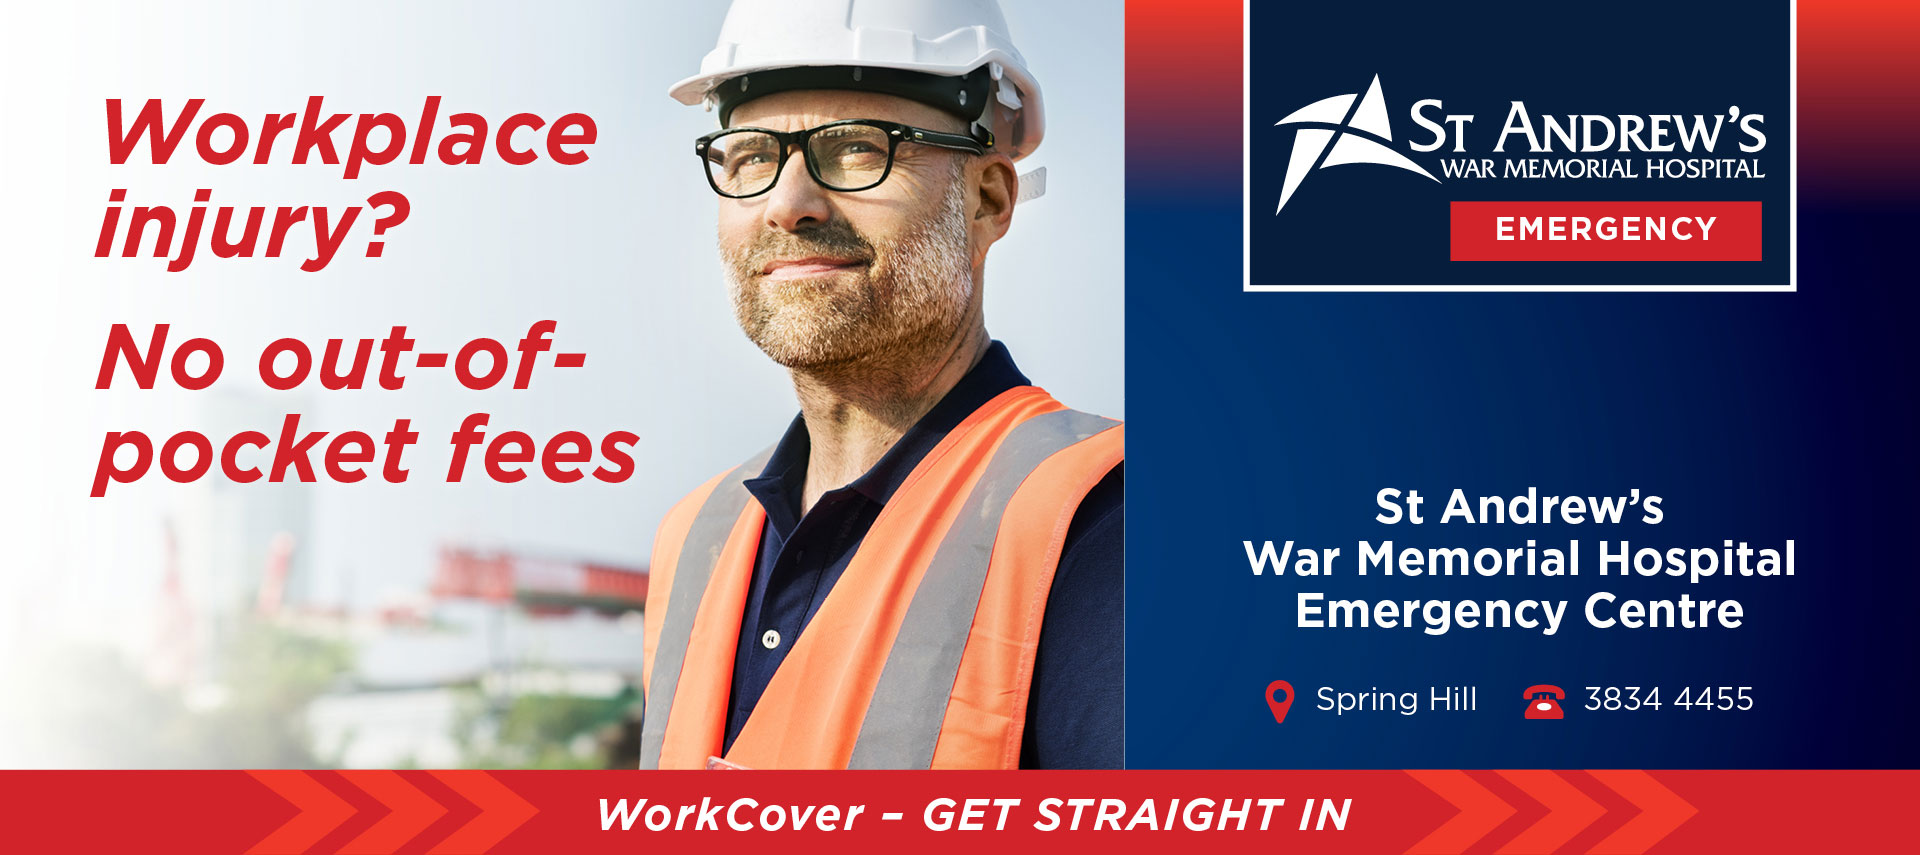 St Andrew's War Memorial Hospital Workcover